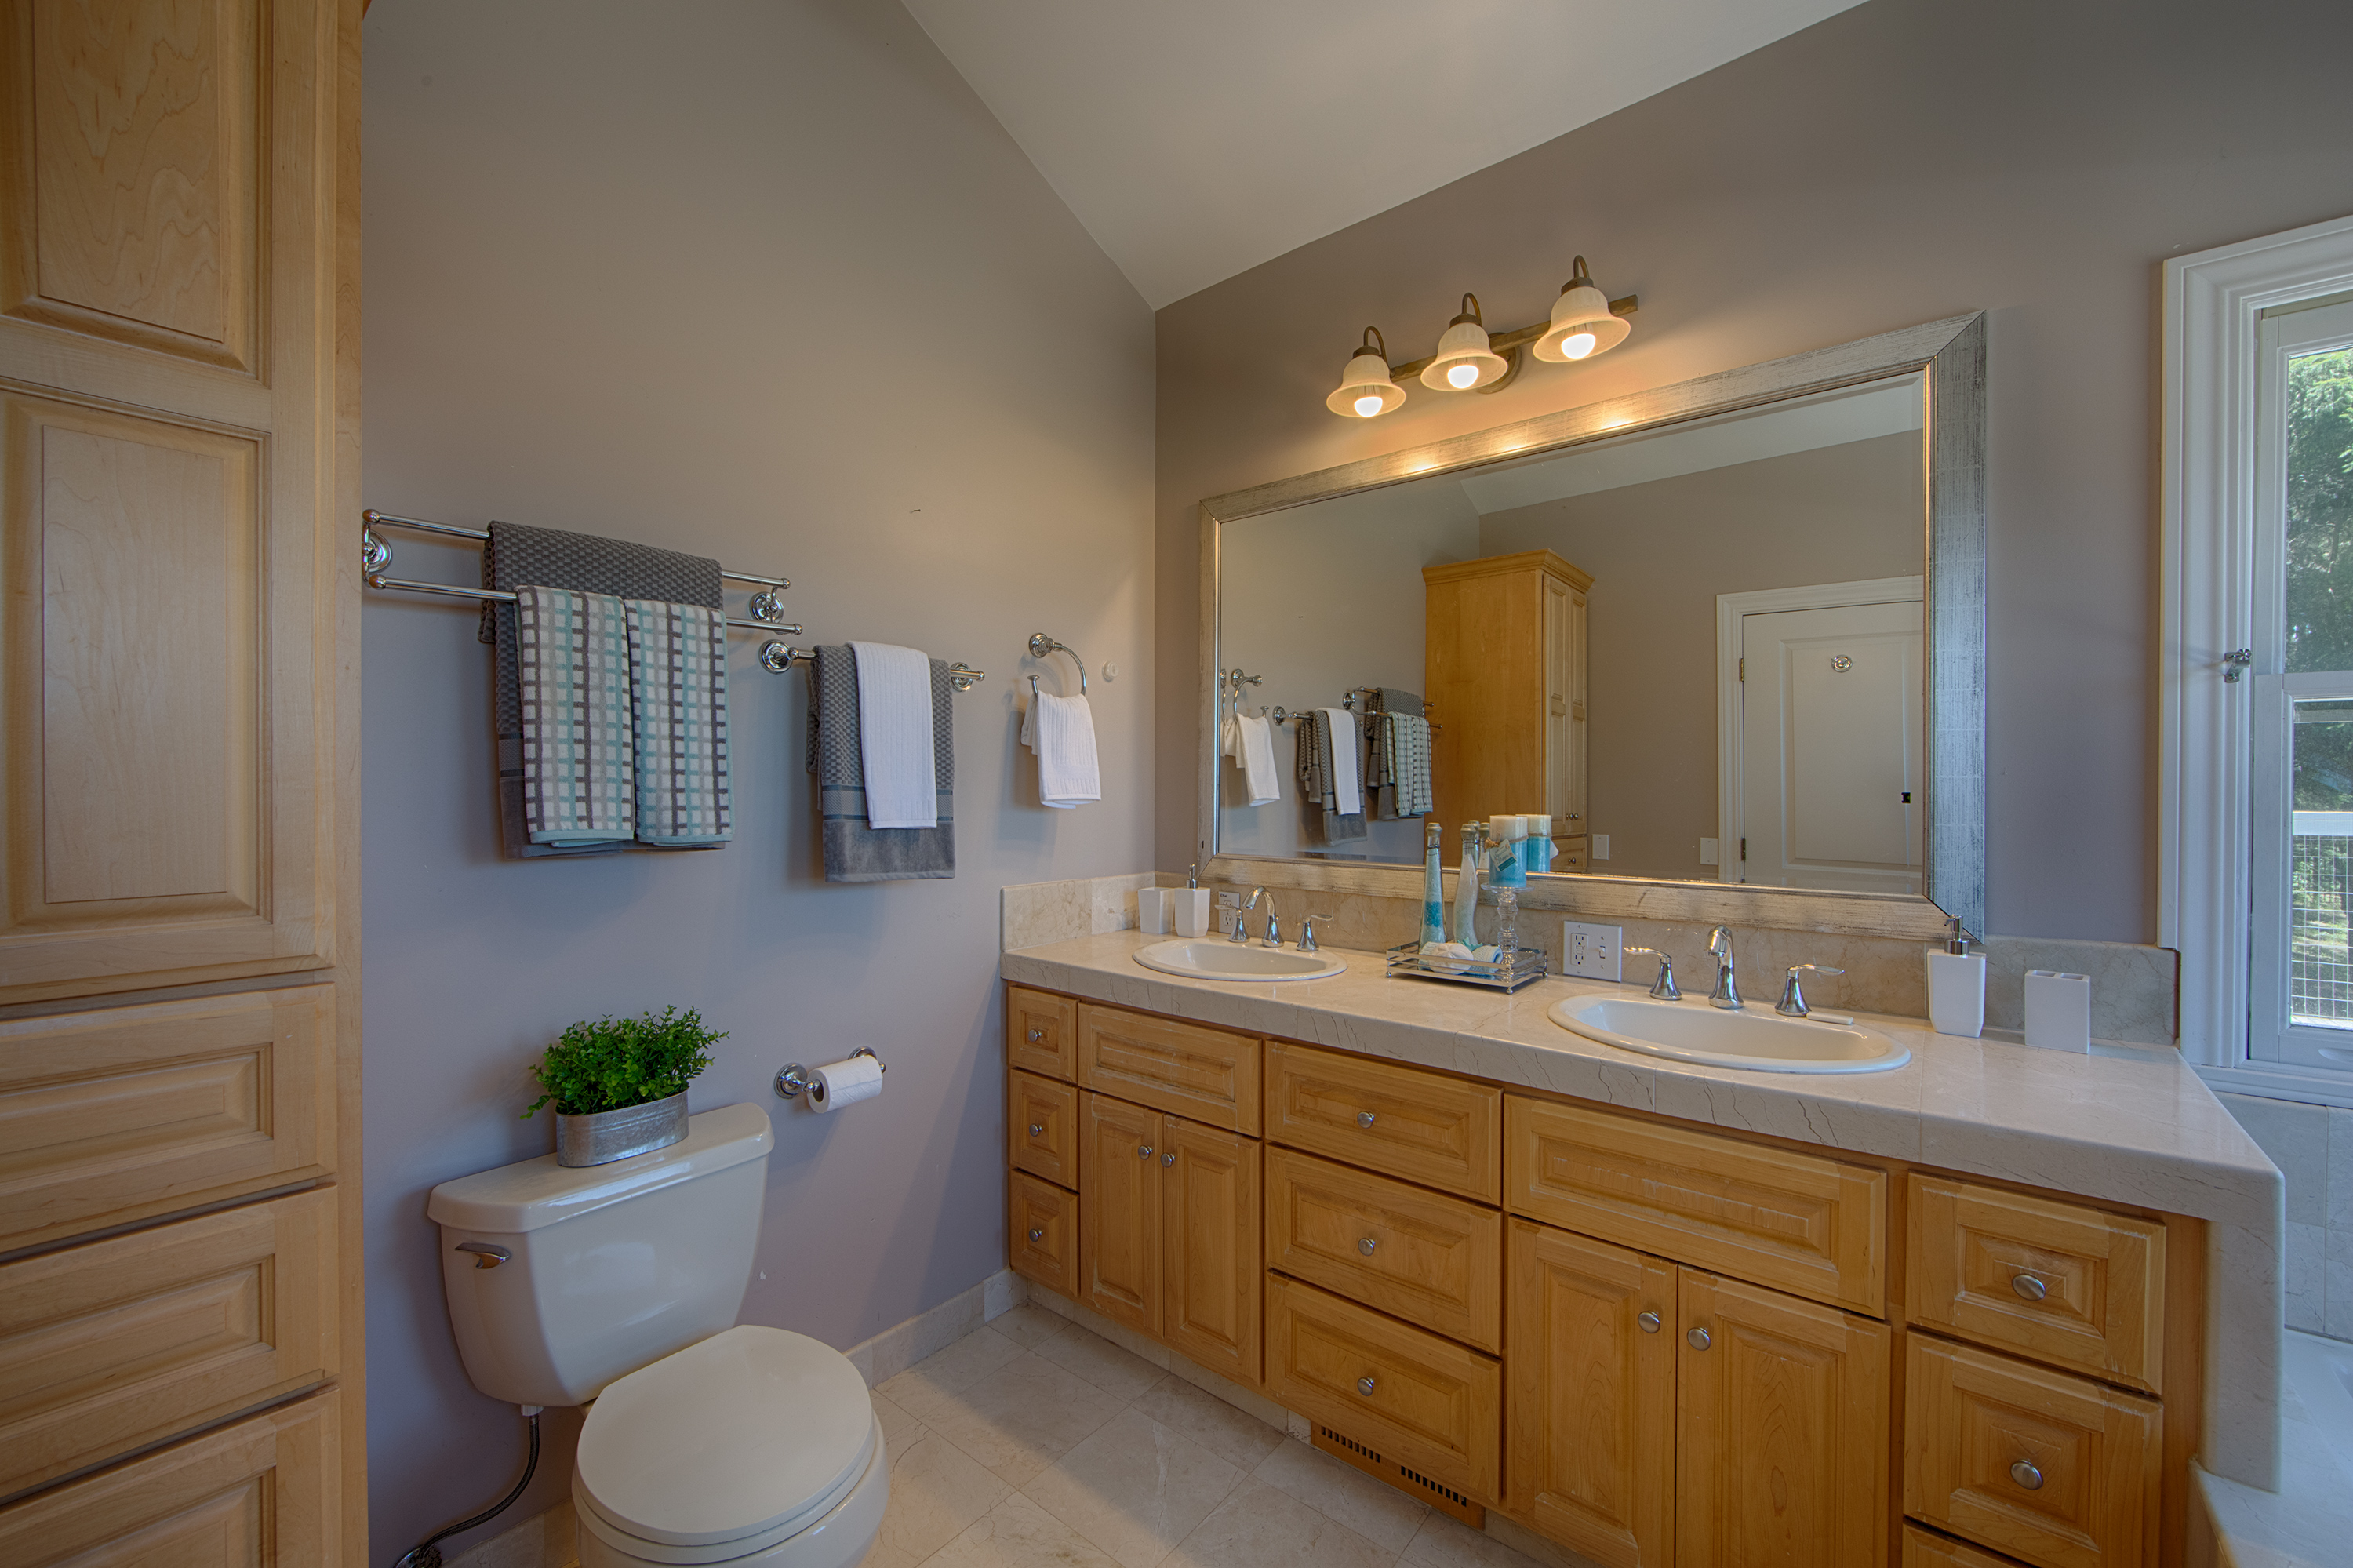 1 Quail Ct, Woodside 94062 - Master Bath (A)